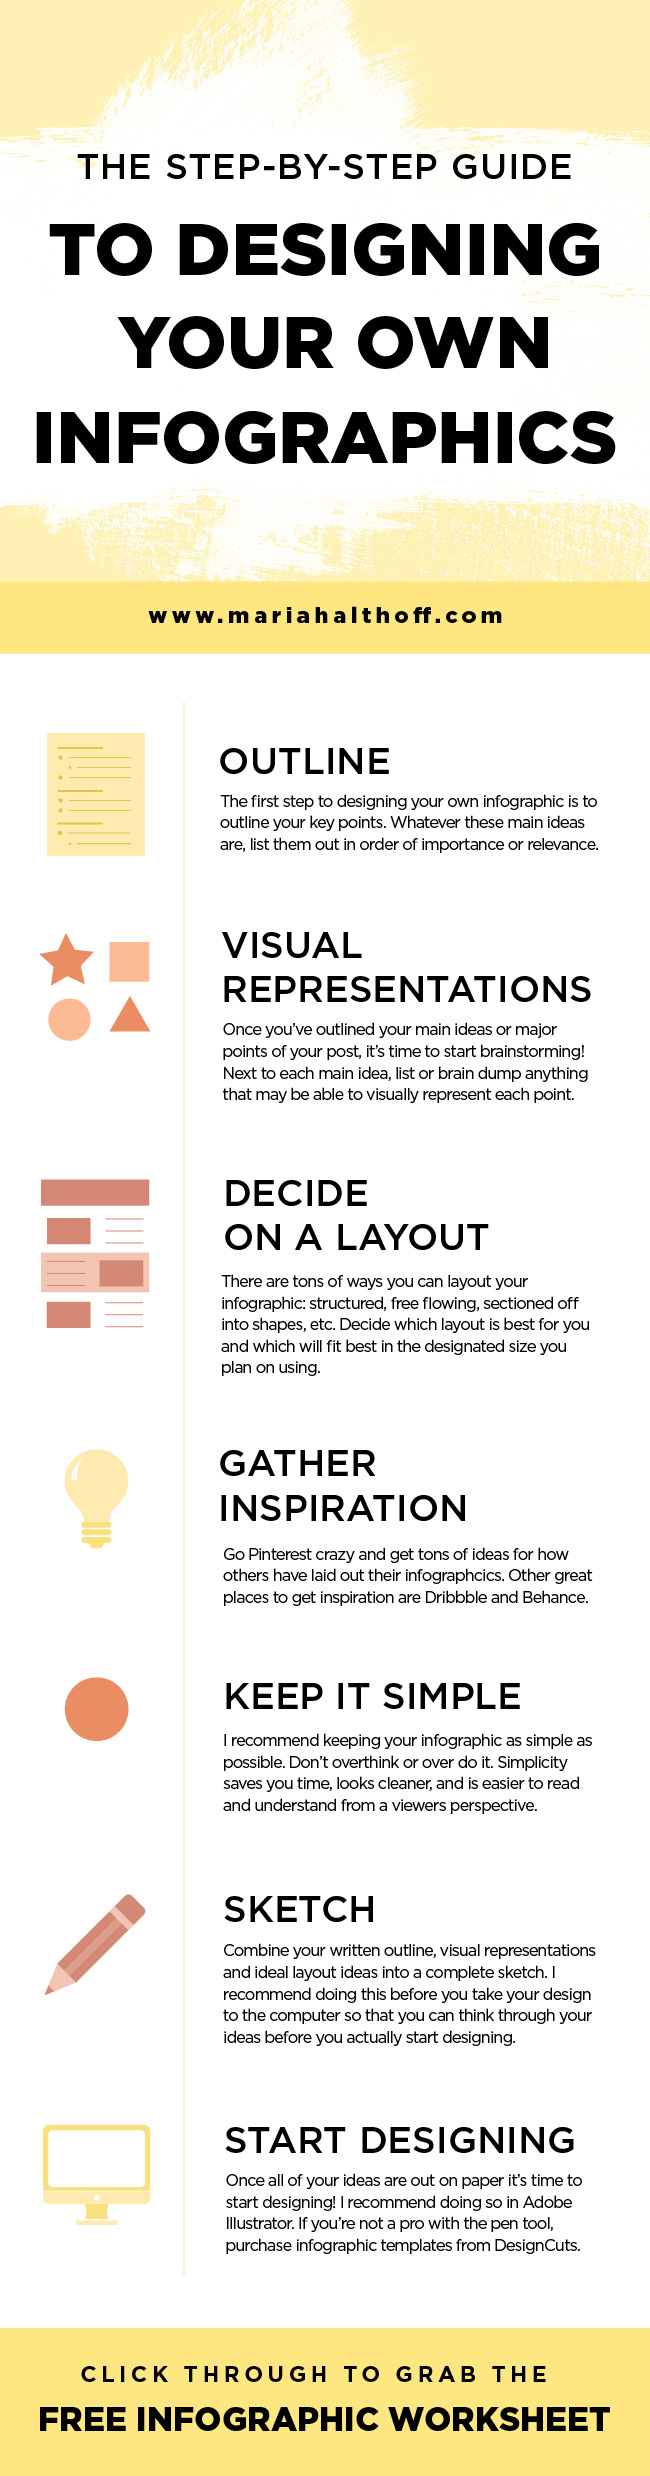 Infographics perform WAY better on social media than any other graphics I've created or promoted. Here's how you can make your own infographics to gain more traffic for your blog or business!